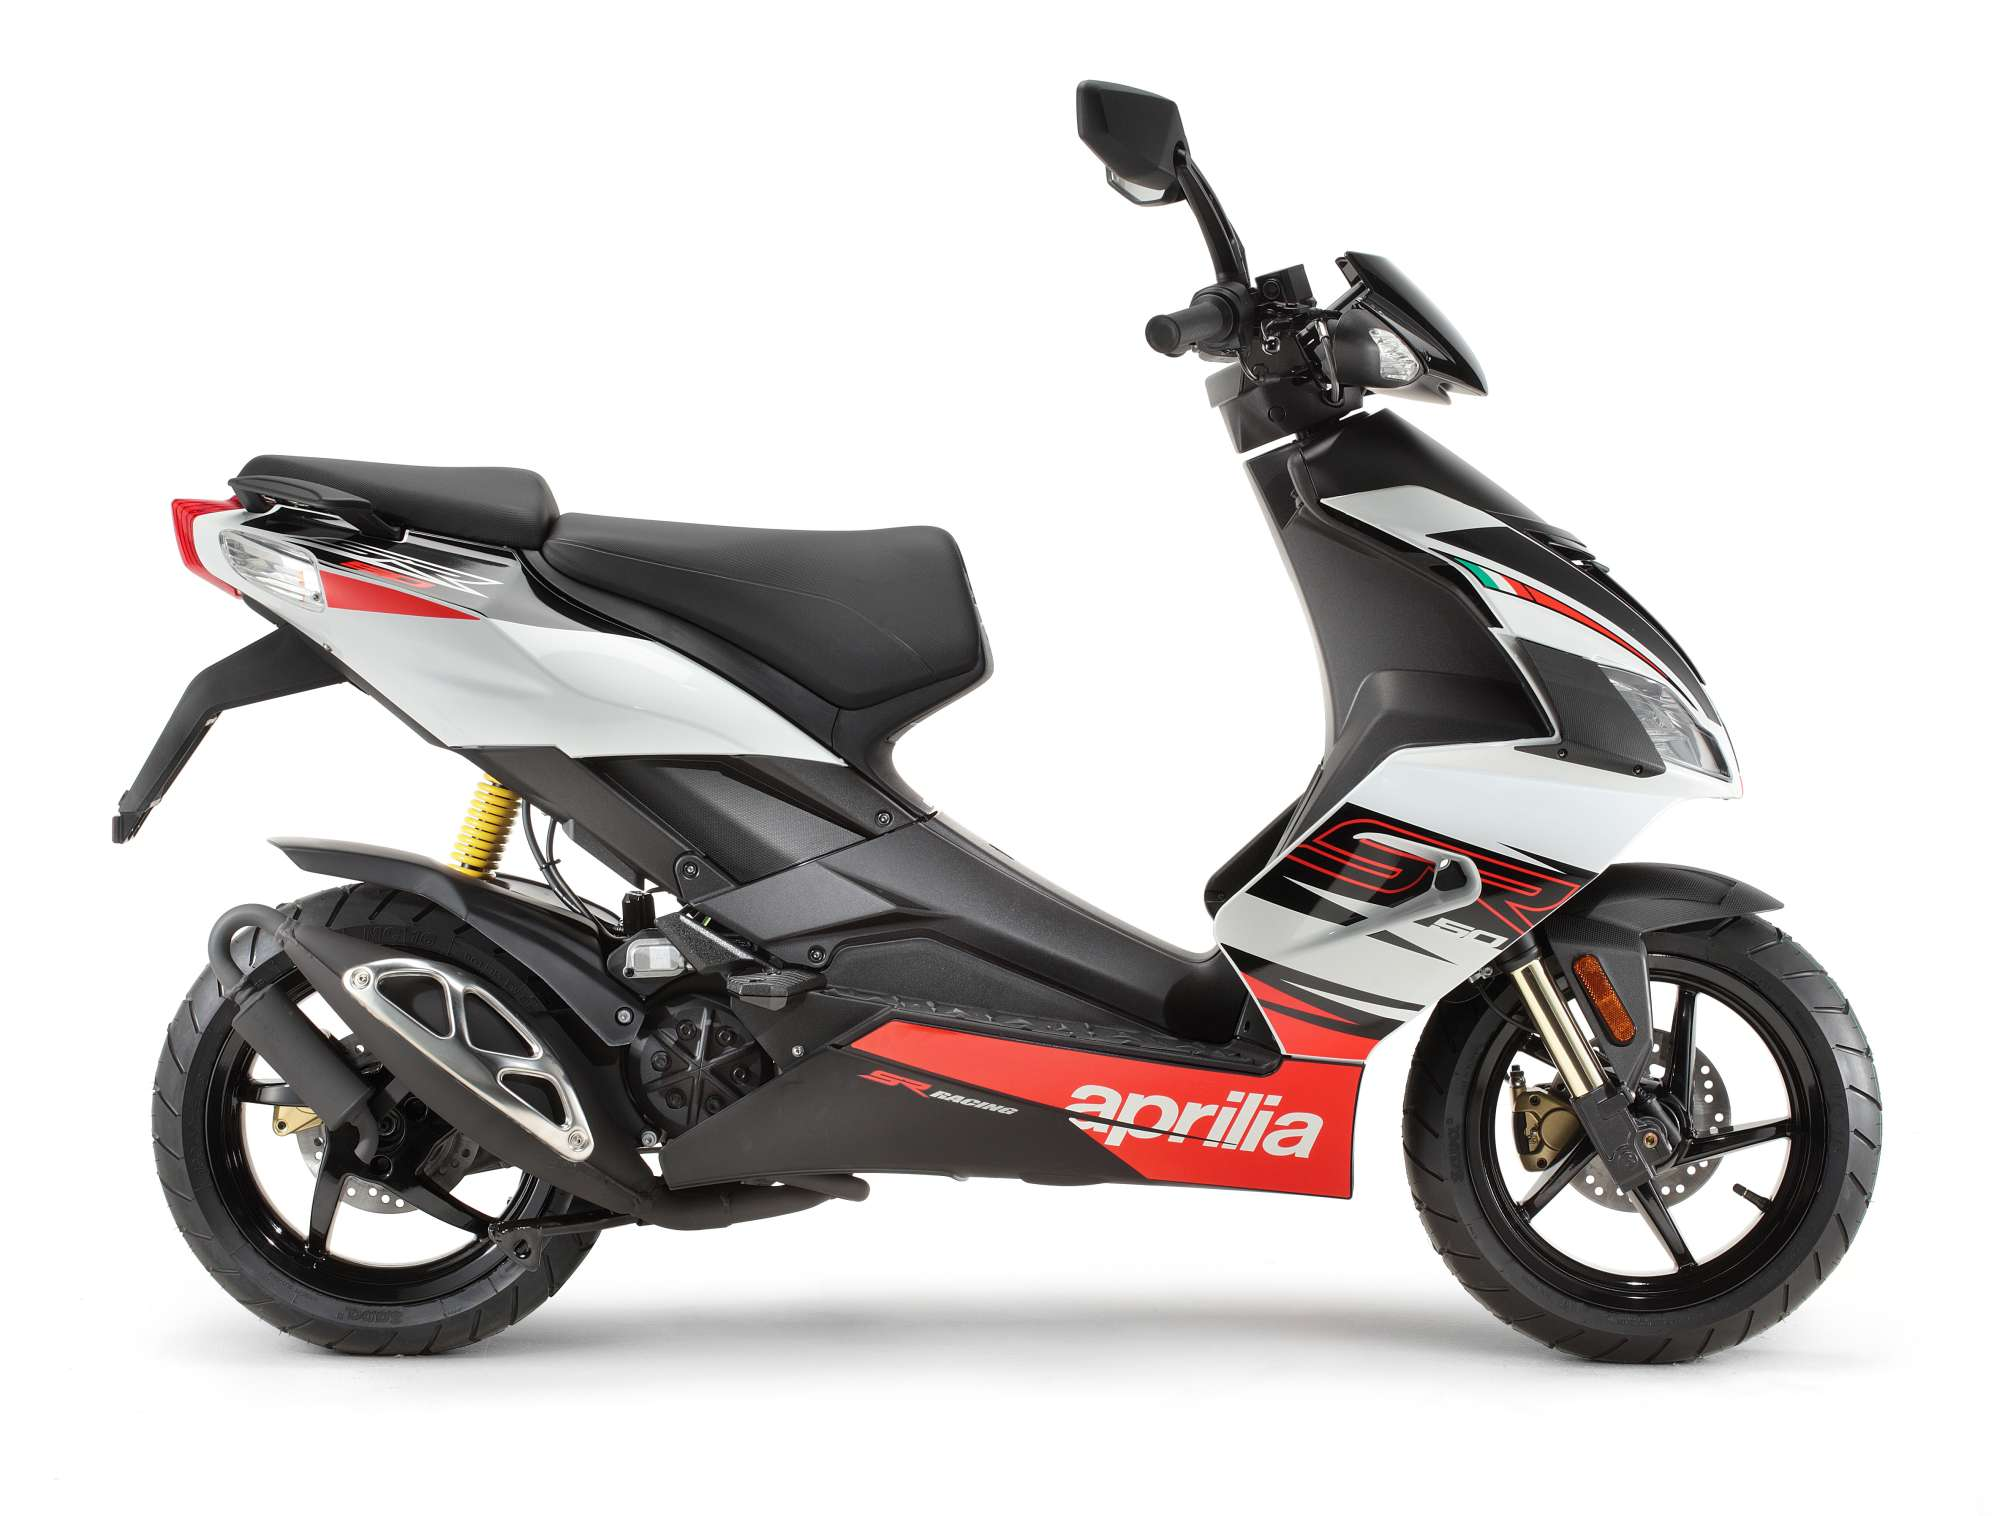 aprilia sr 50 r all technical data of the model sr 50 r. Black Bedroom Furniture Sets. Home Design Ideas